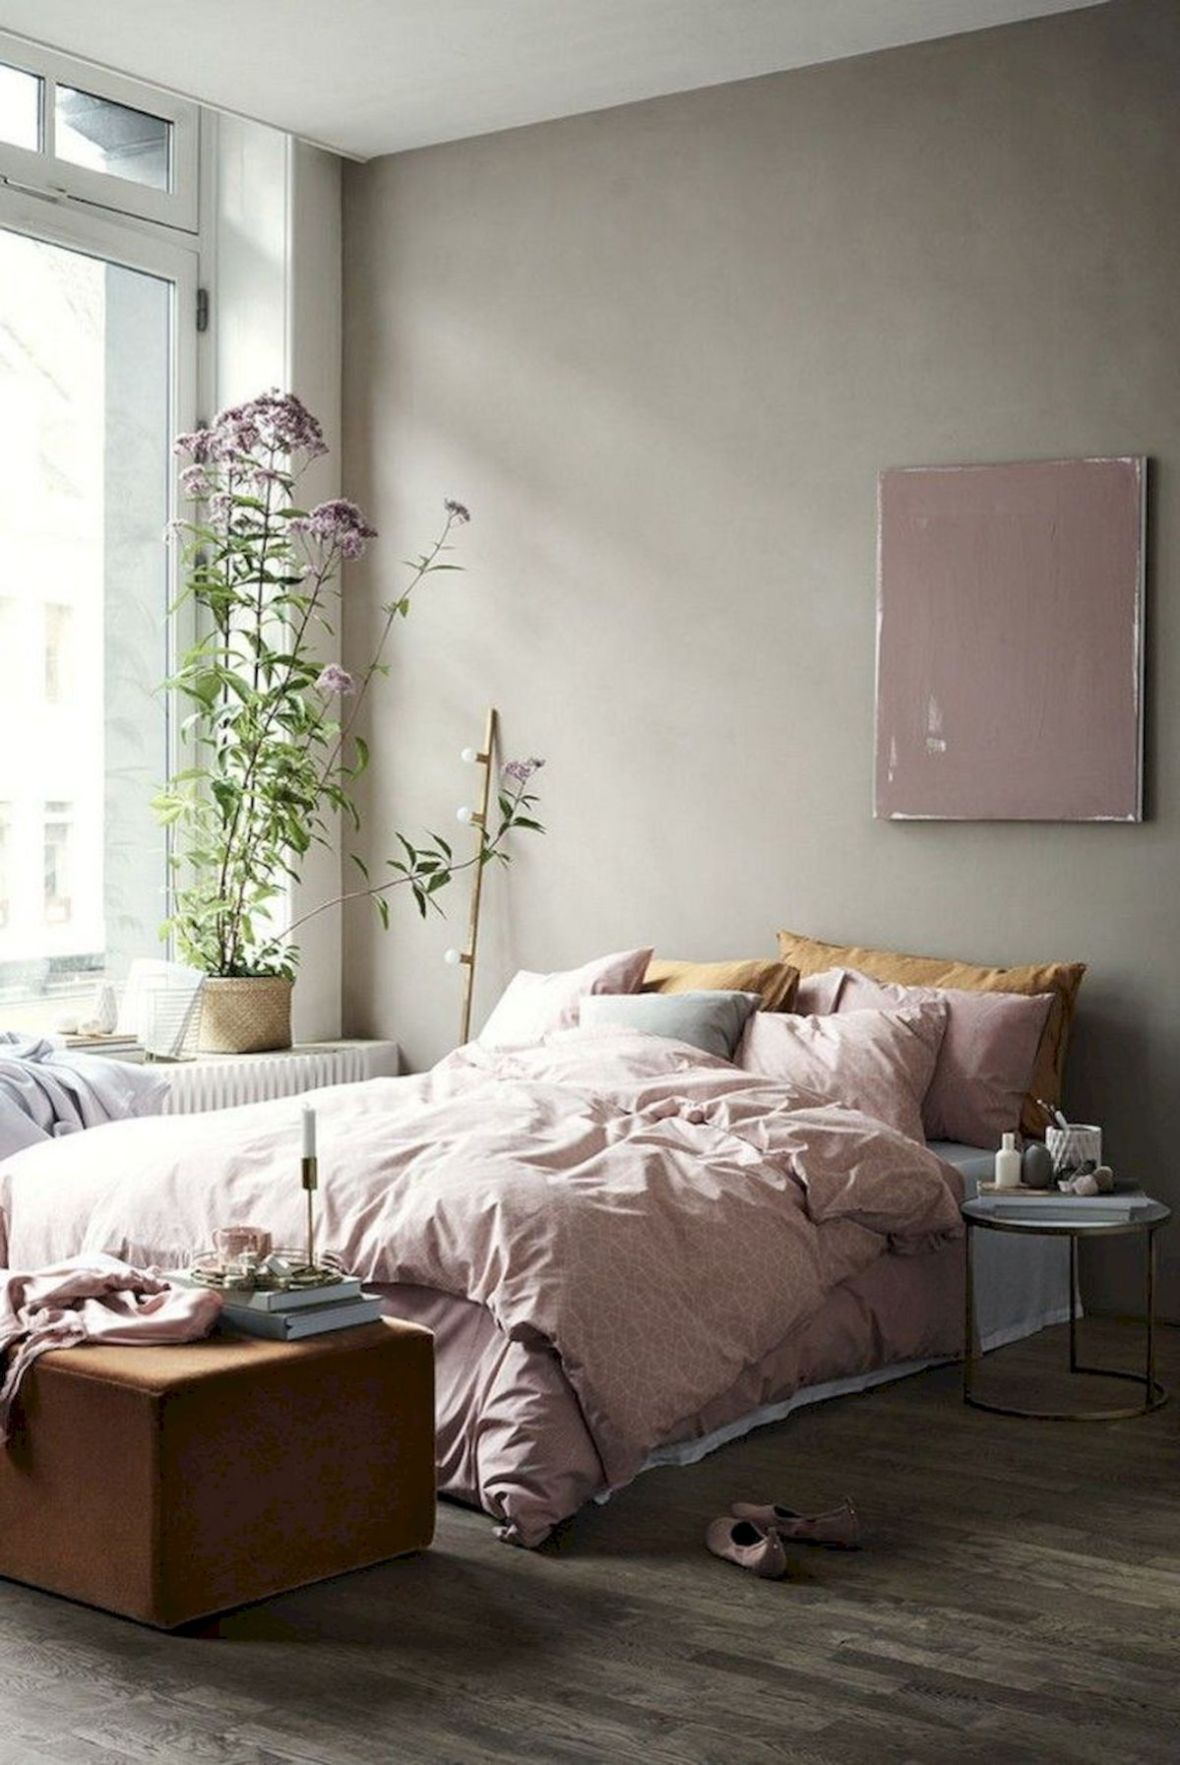 Bedroom Scandinavian Style And Decoration Interior Design Bedroom Bedroom Interior Scandinavian Design Bedroom